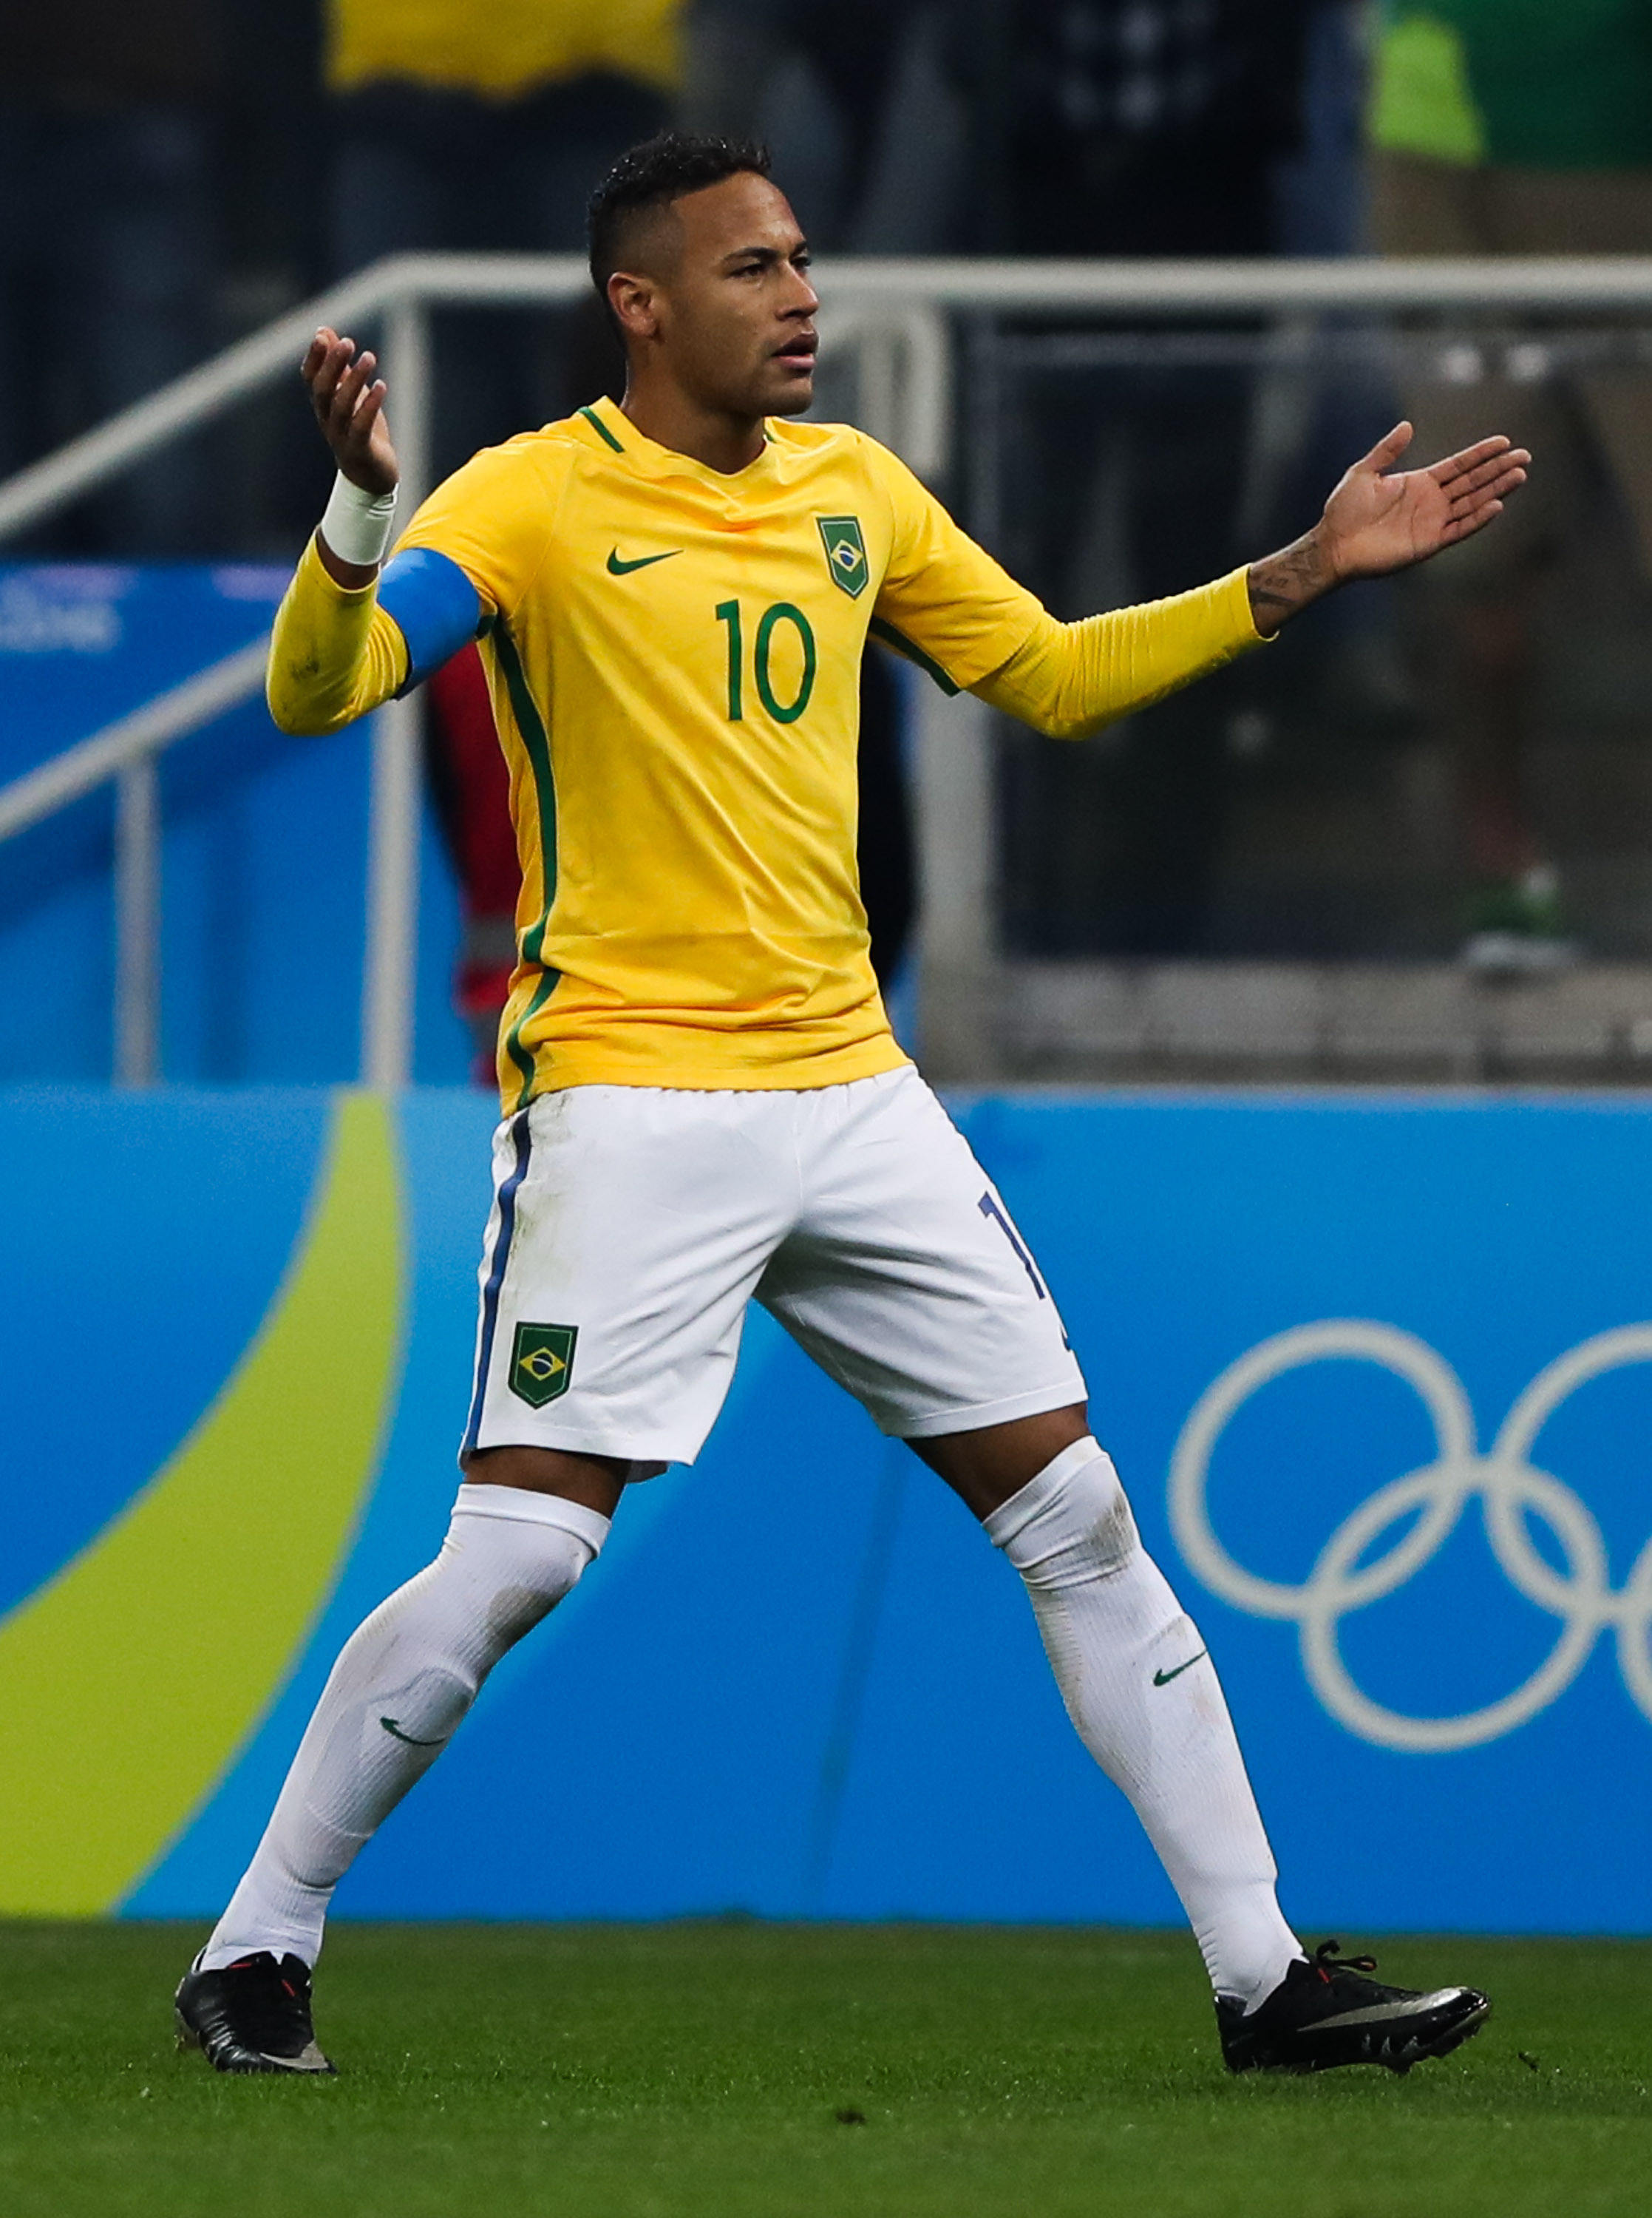 With the Women's team losing in penalties, the pressure mounts on Neymar and the Brazilian men.